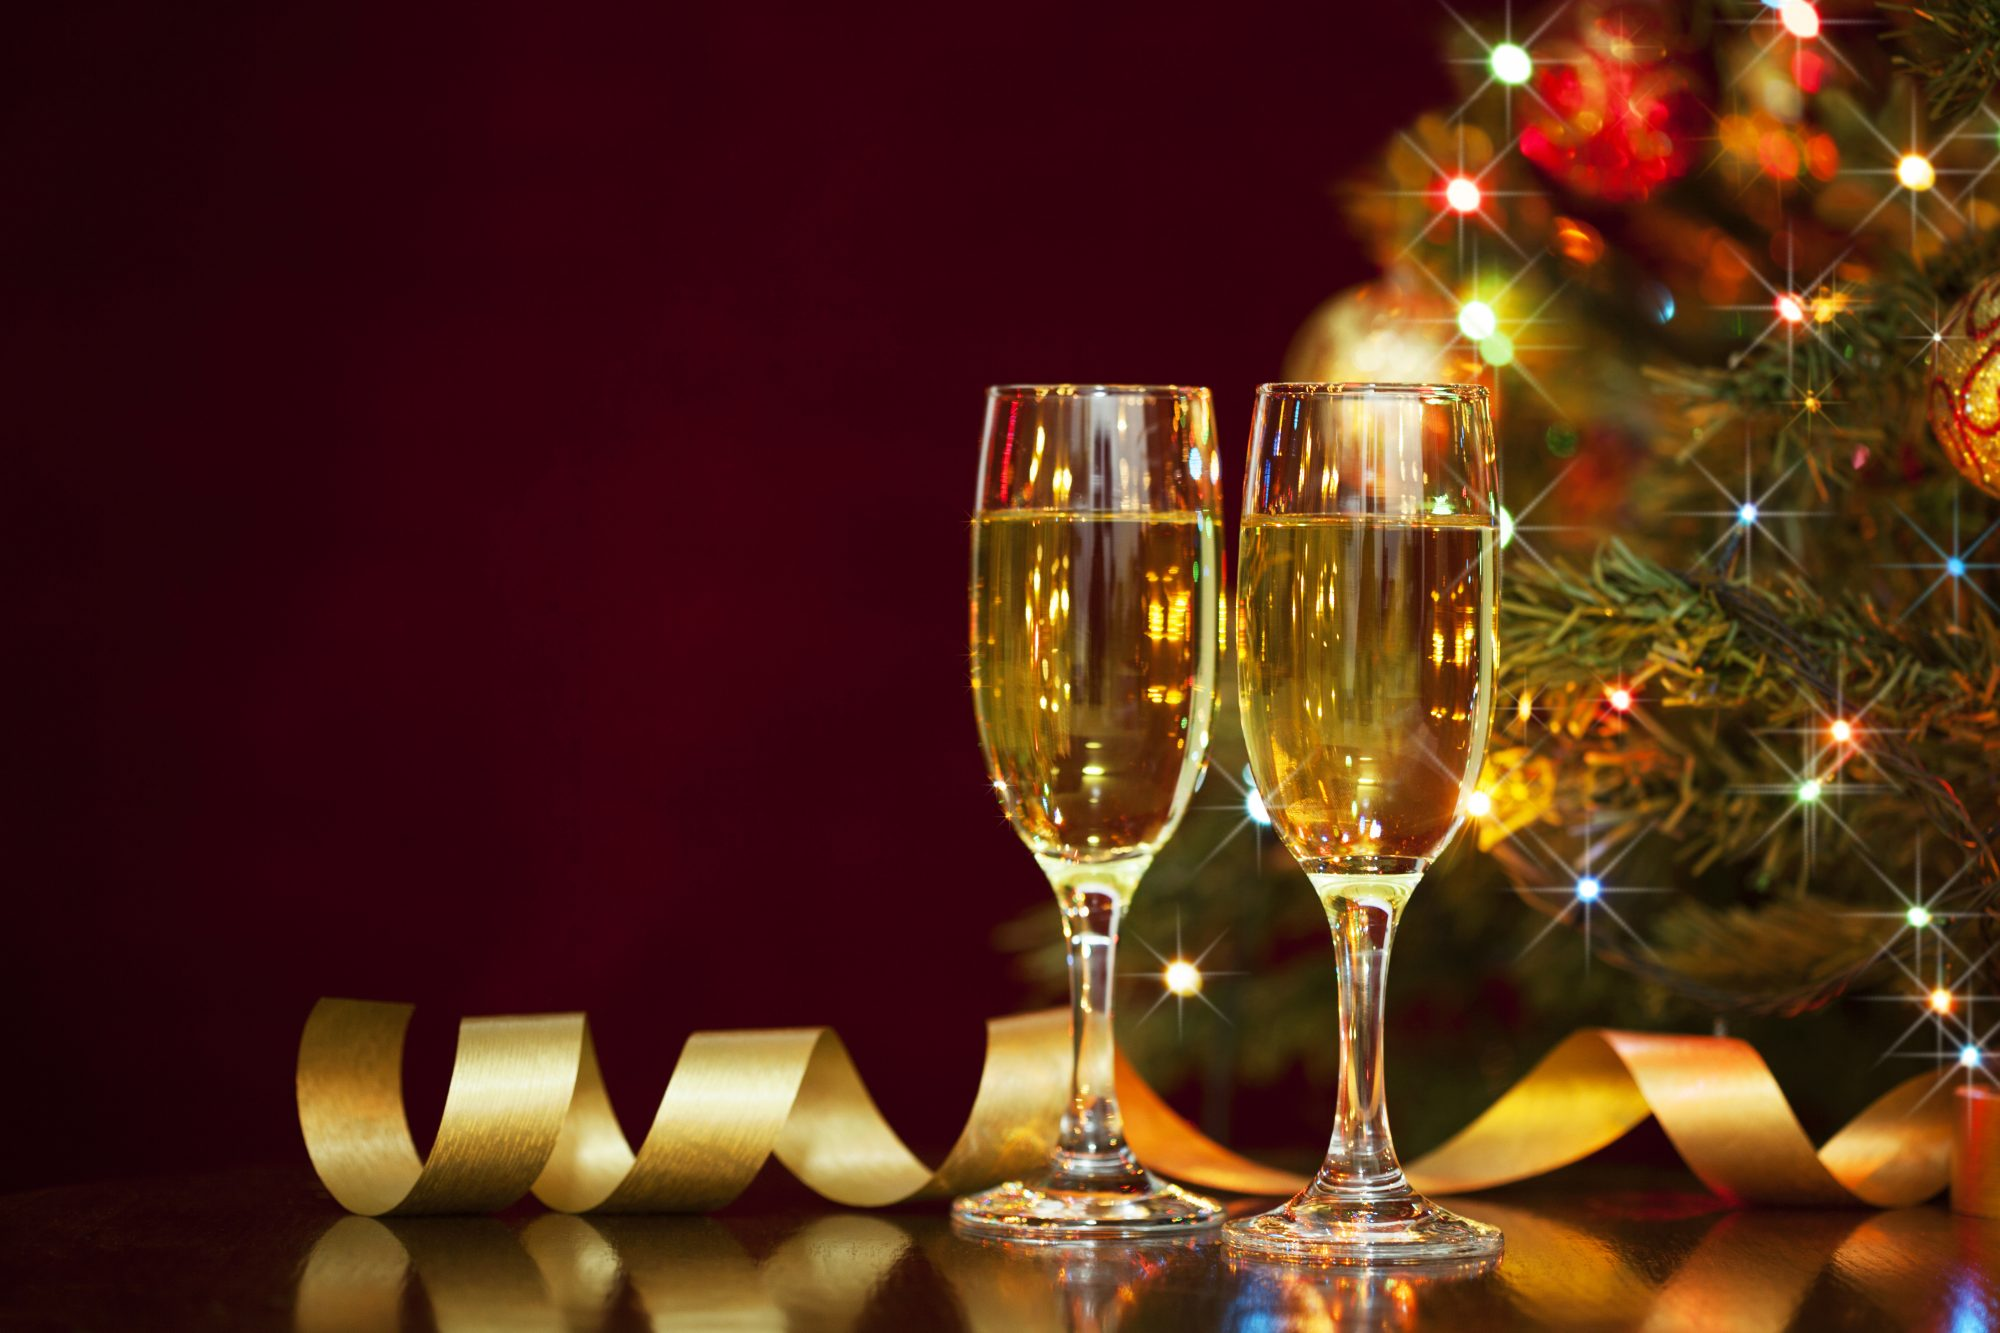 Champagne flutes with Christmas tree